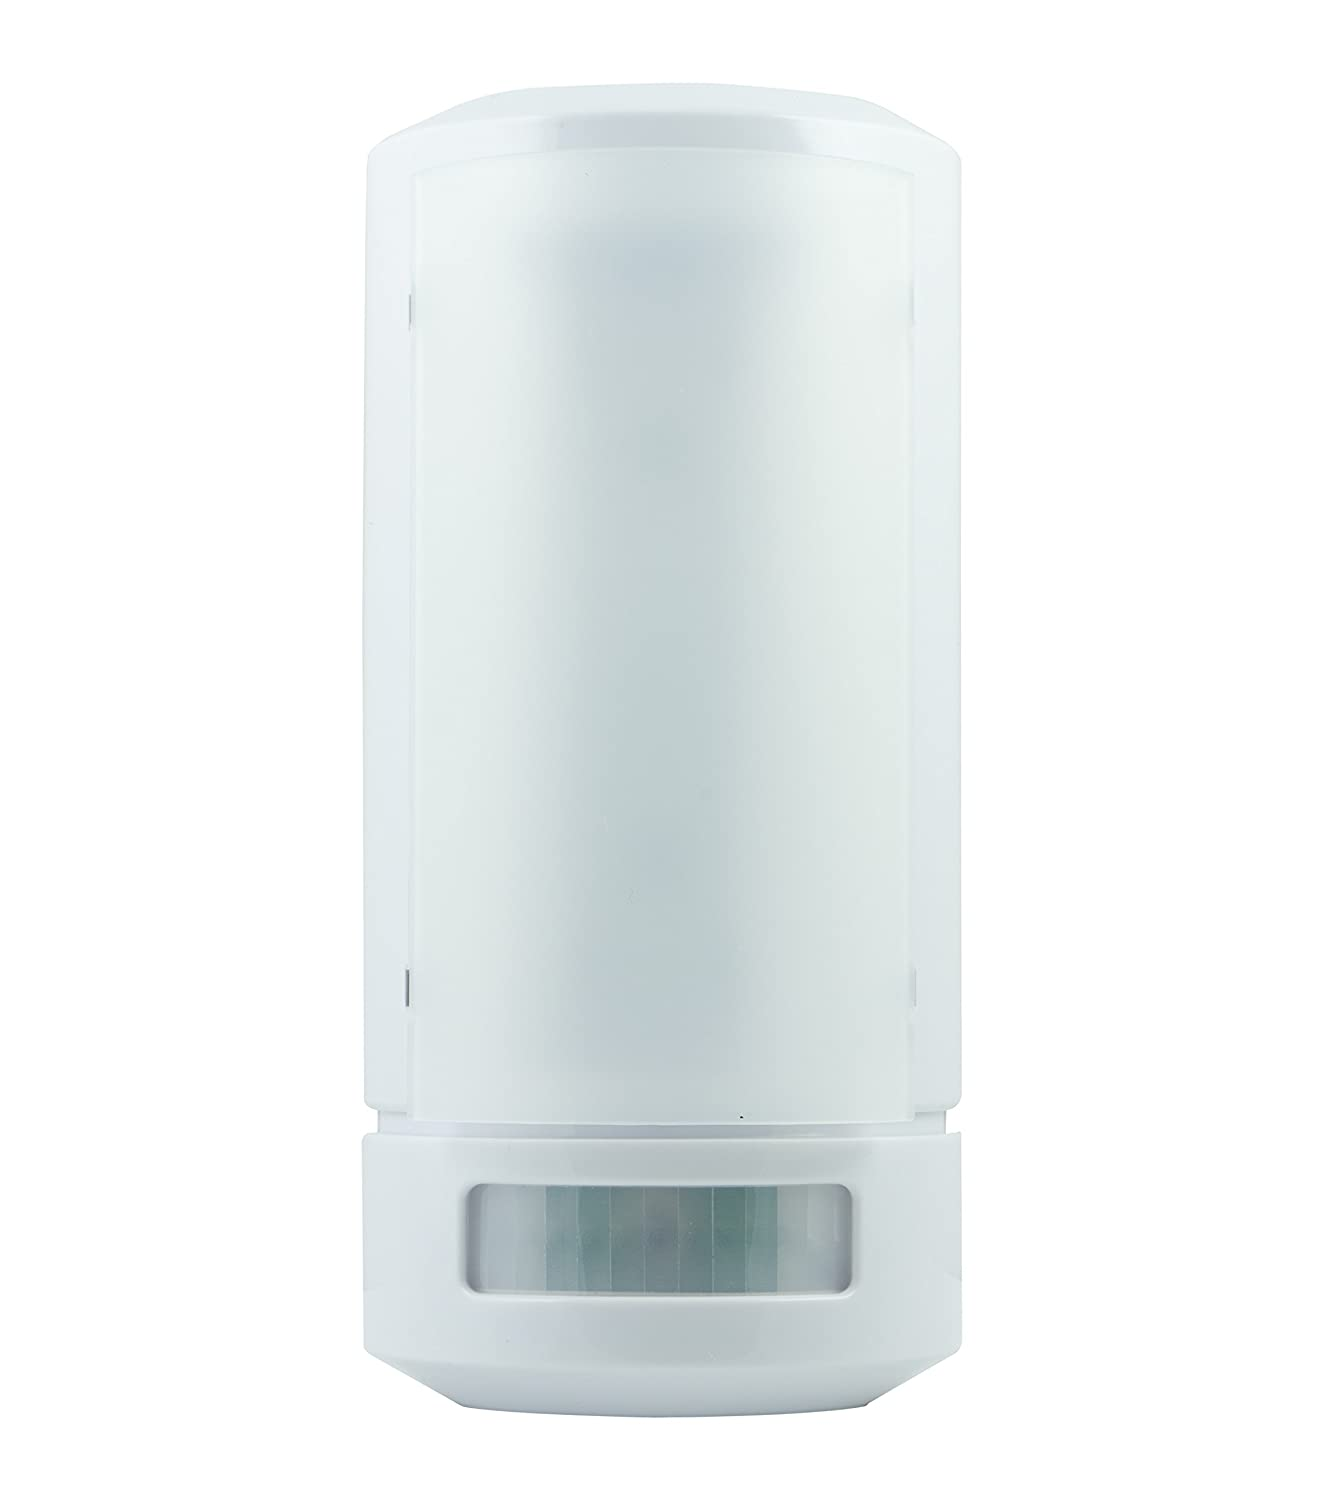 ge 45613 wave 3. Ge 45613 Wave 3. Wireless Led Wall Sconce, Motion Sensing And Manual On 3 T